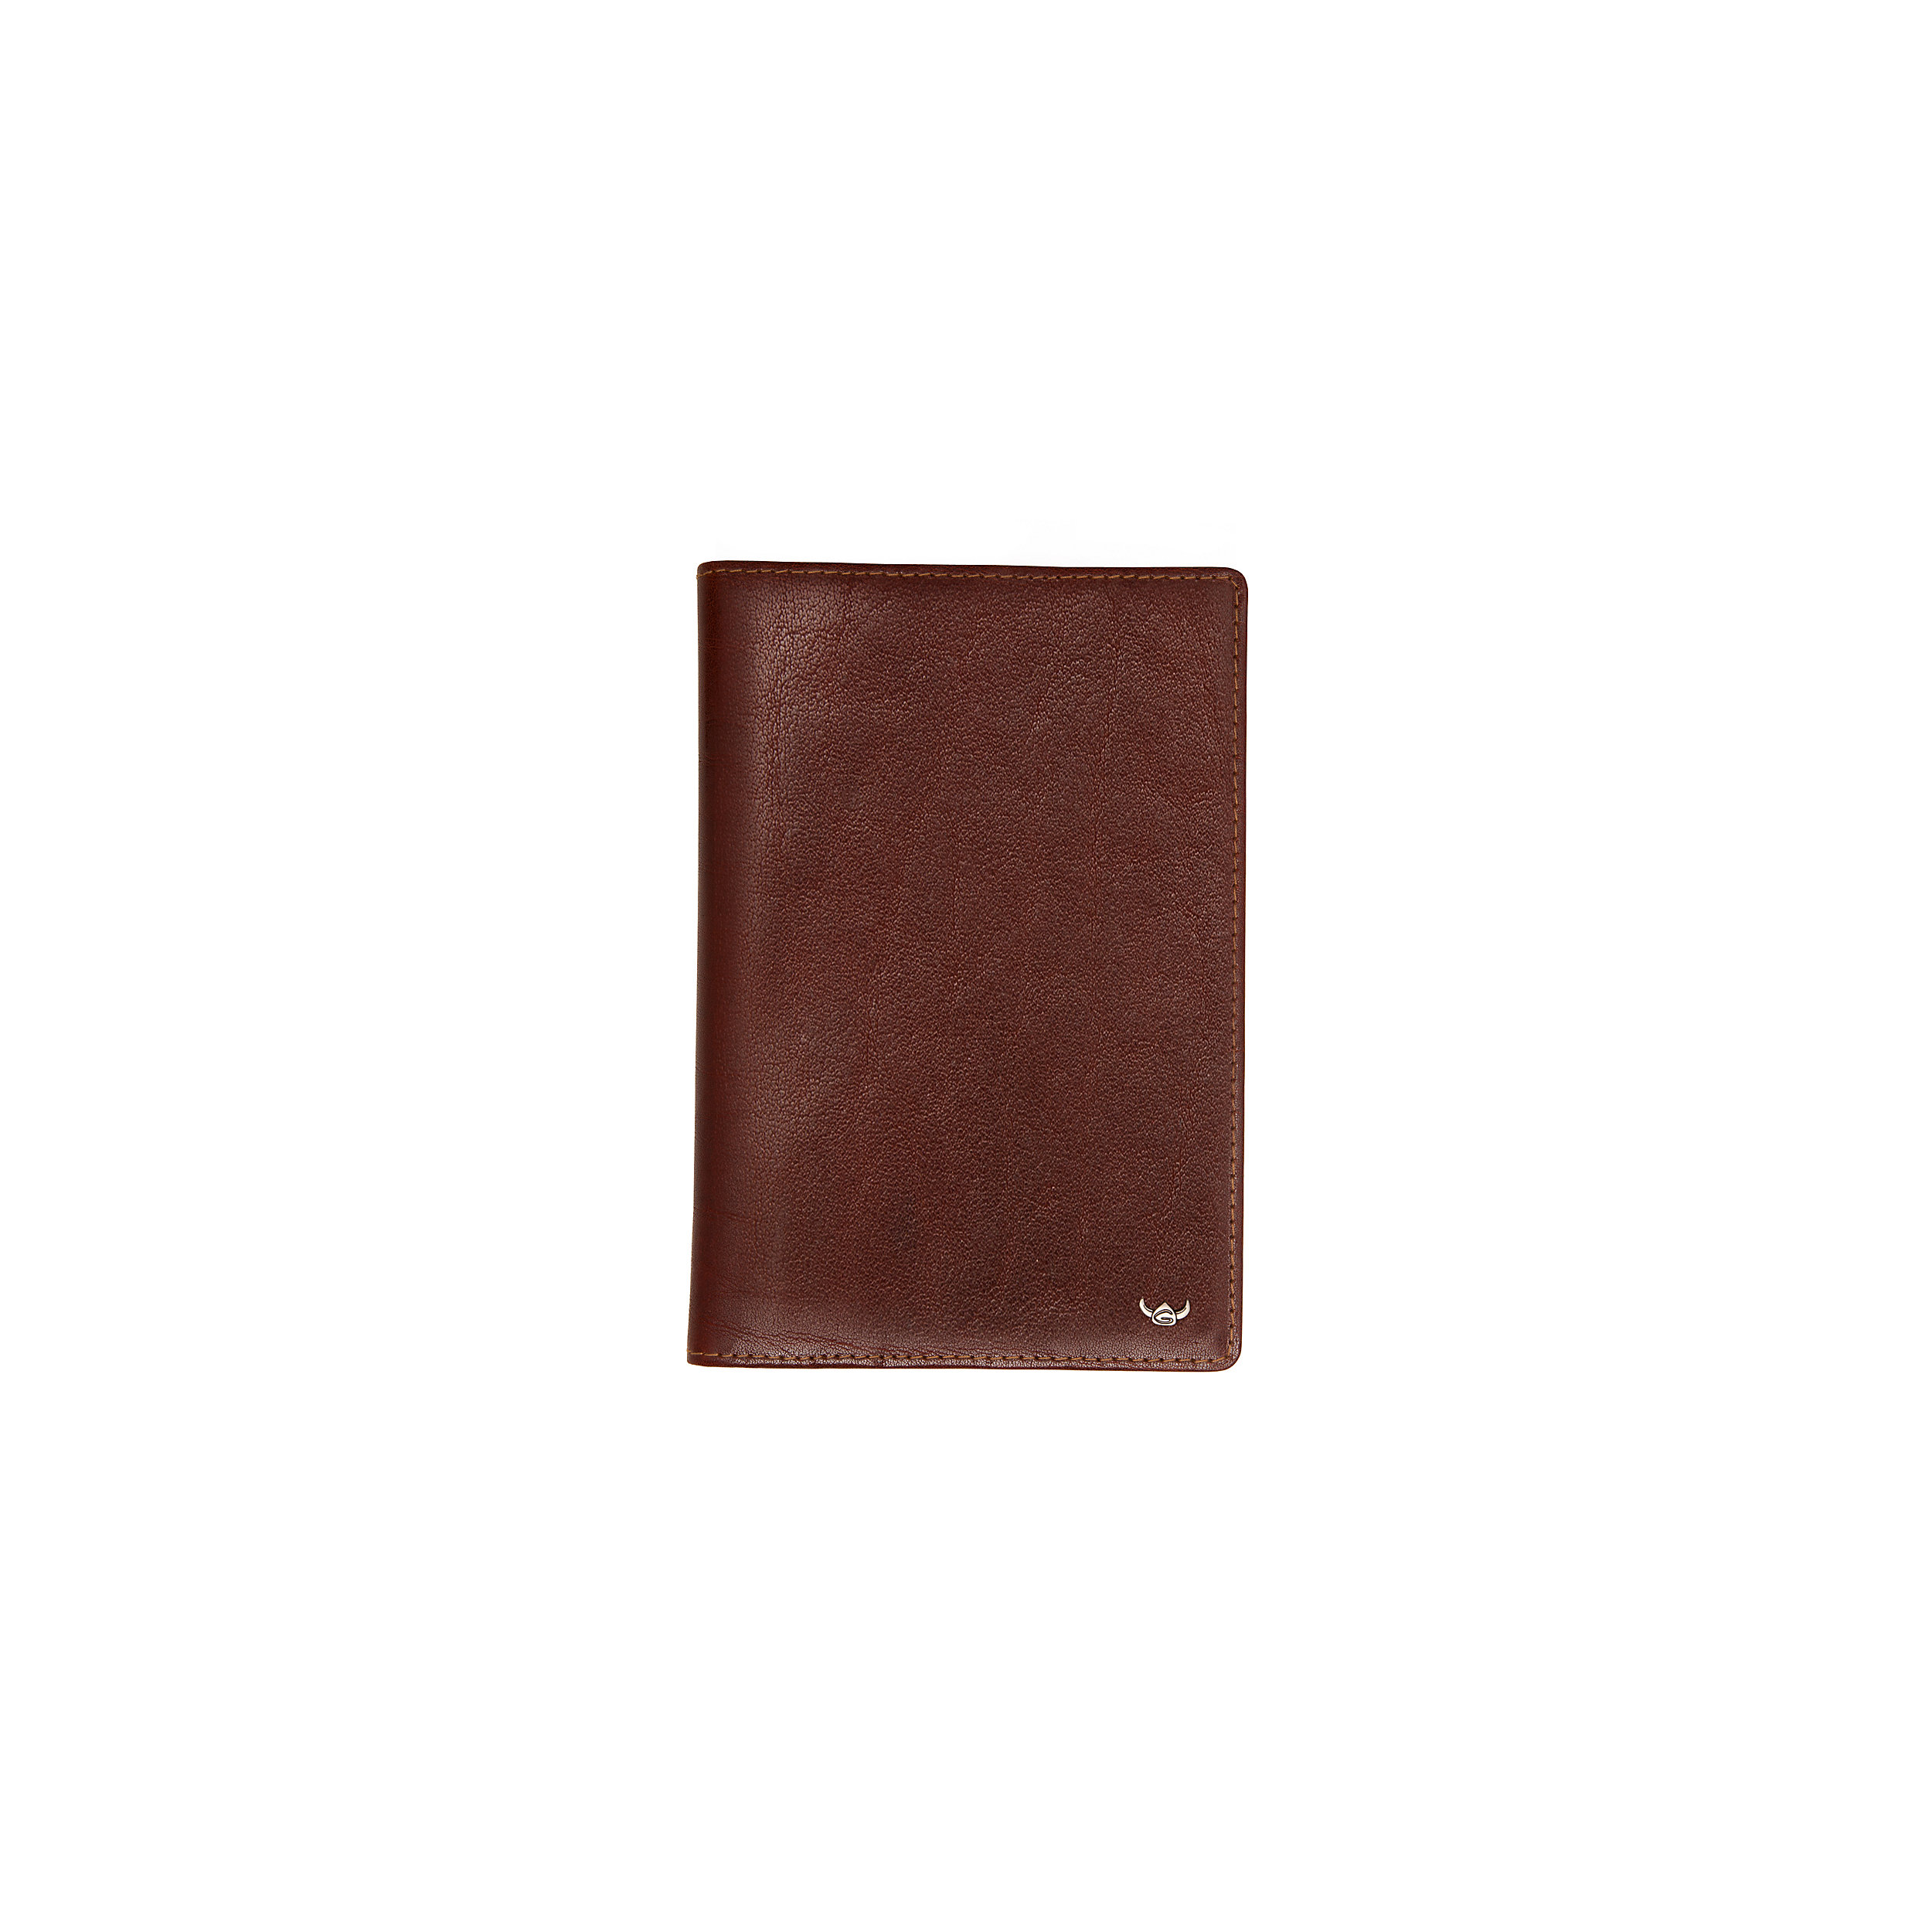 Wallet with zip 6cc